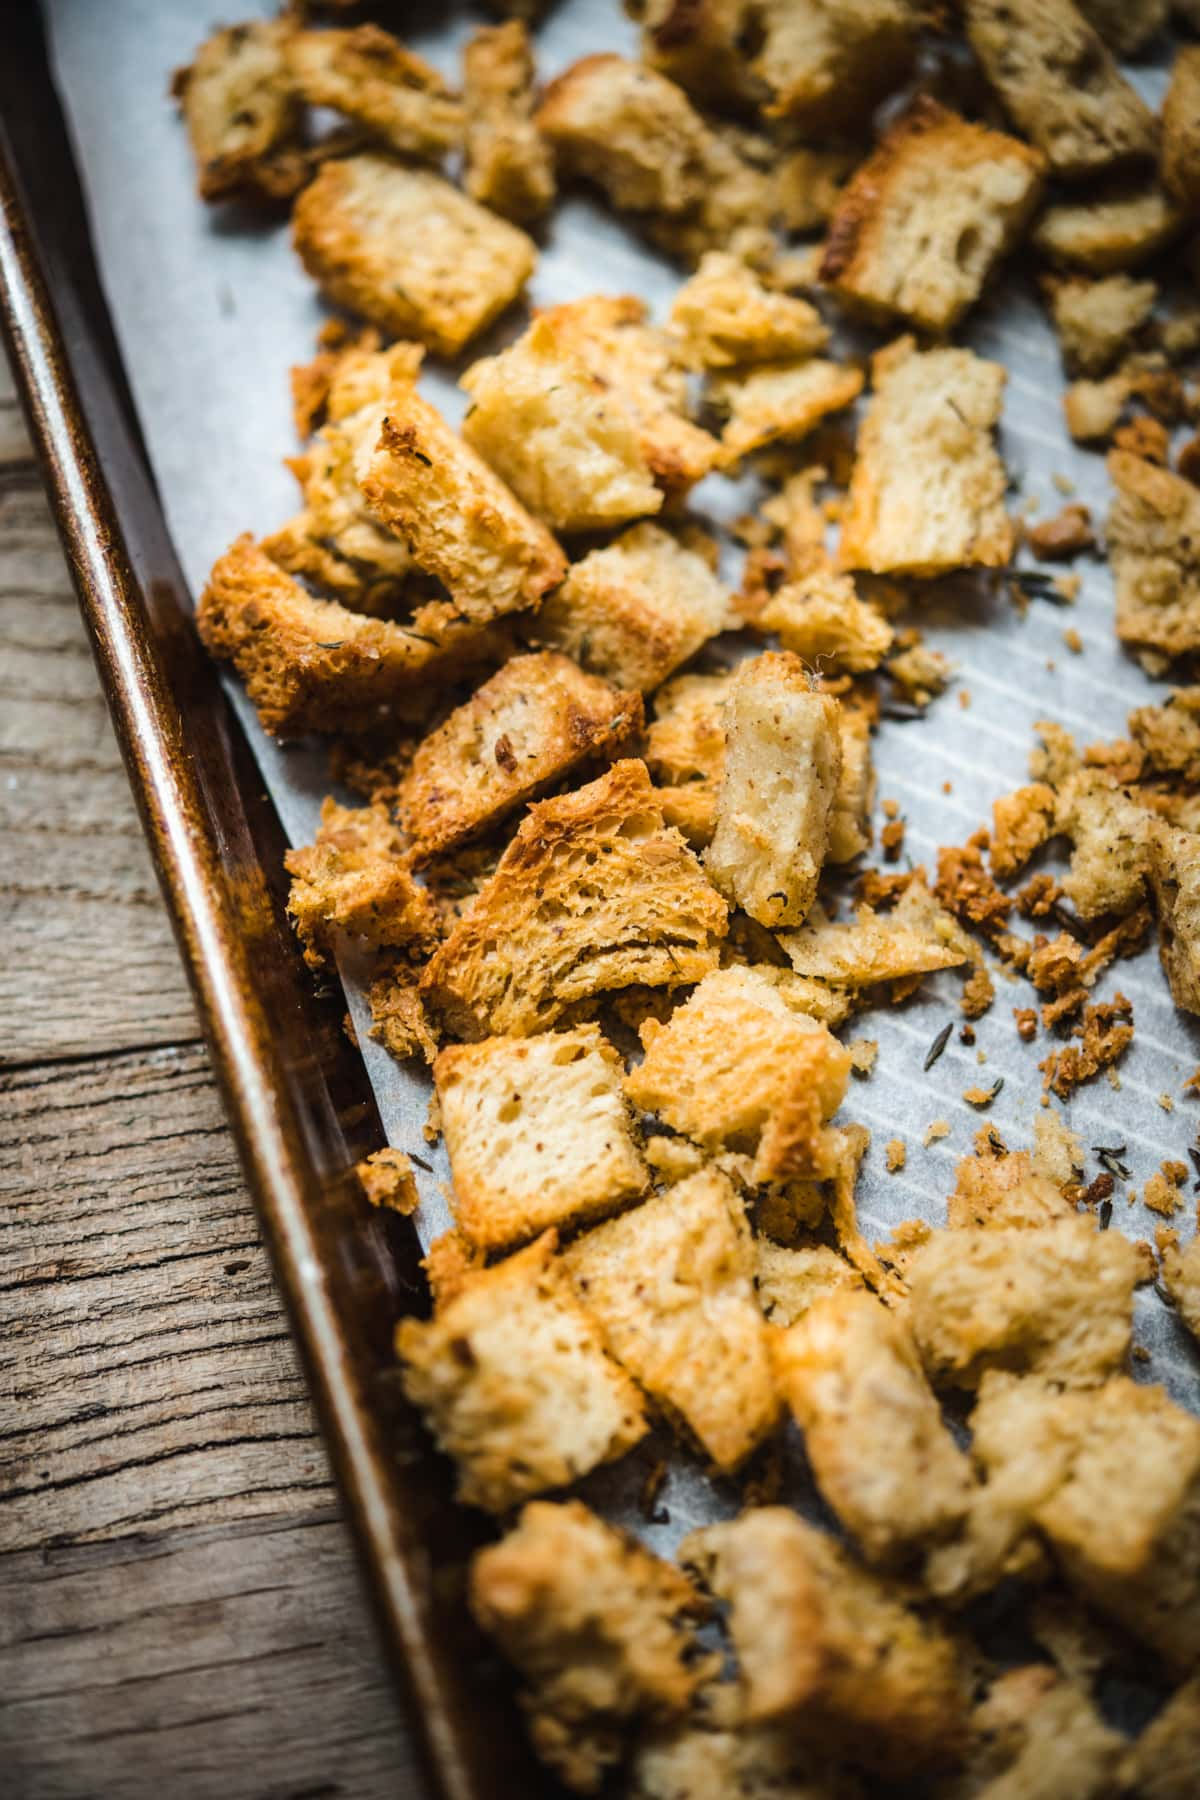 close up view of toasted bread cubes on a sheet pan.